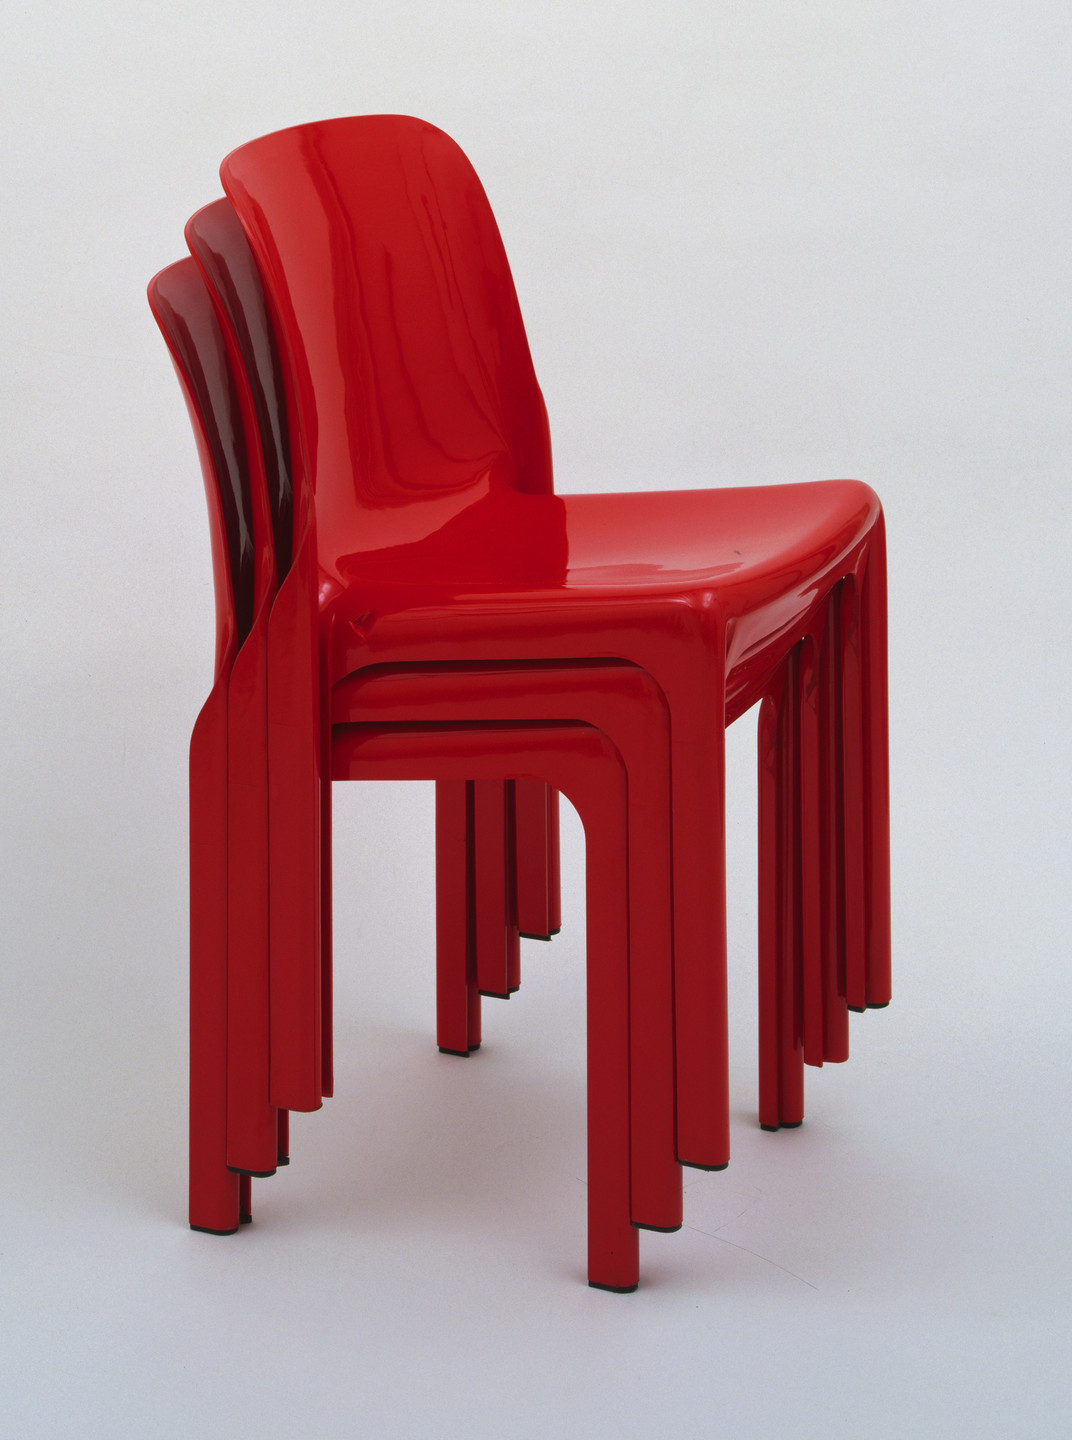 Vico Magistretti. Selene Stacking Chairs. 1968